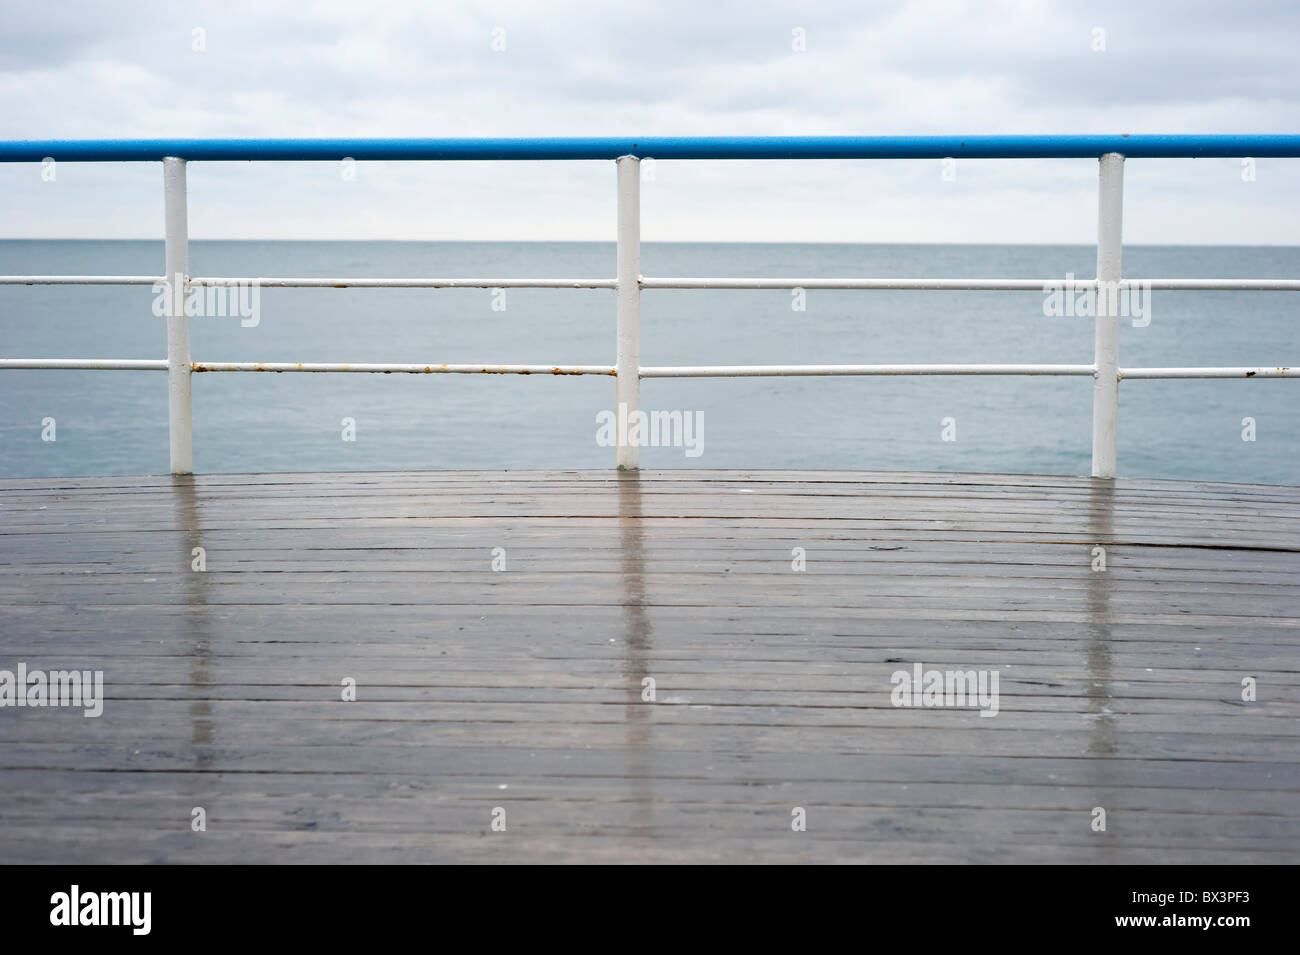 Handrail on a deck in the rainy day - Stock Image